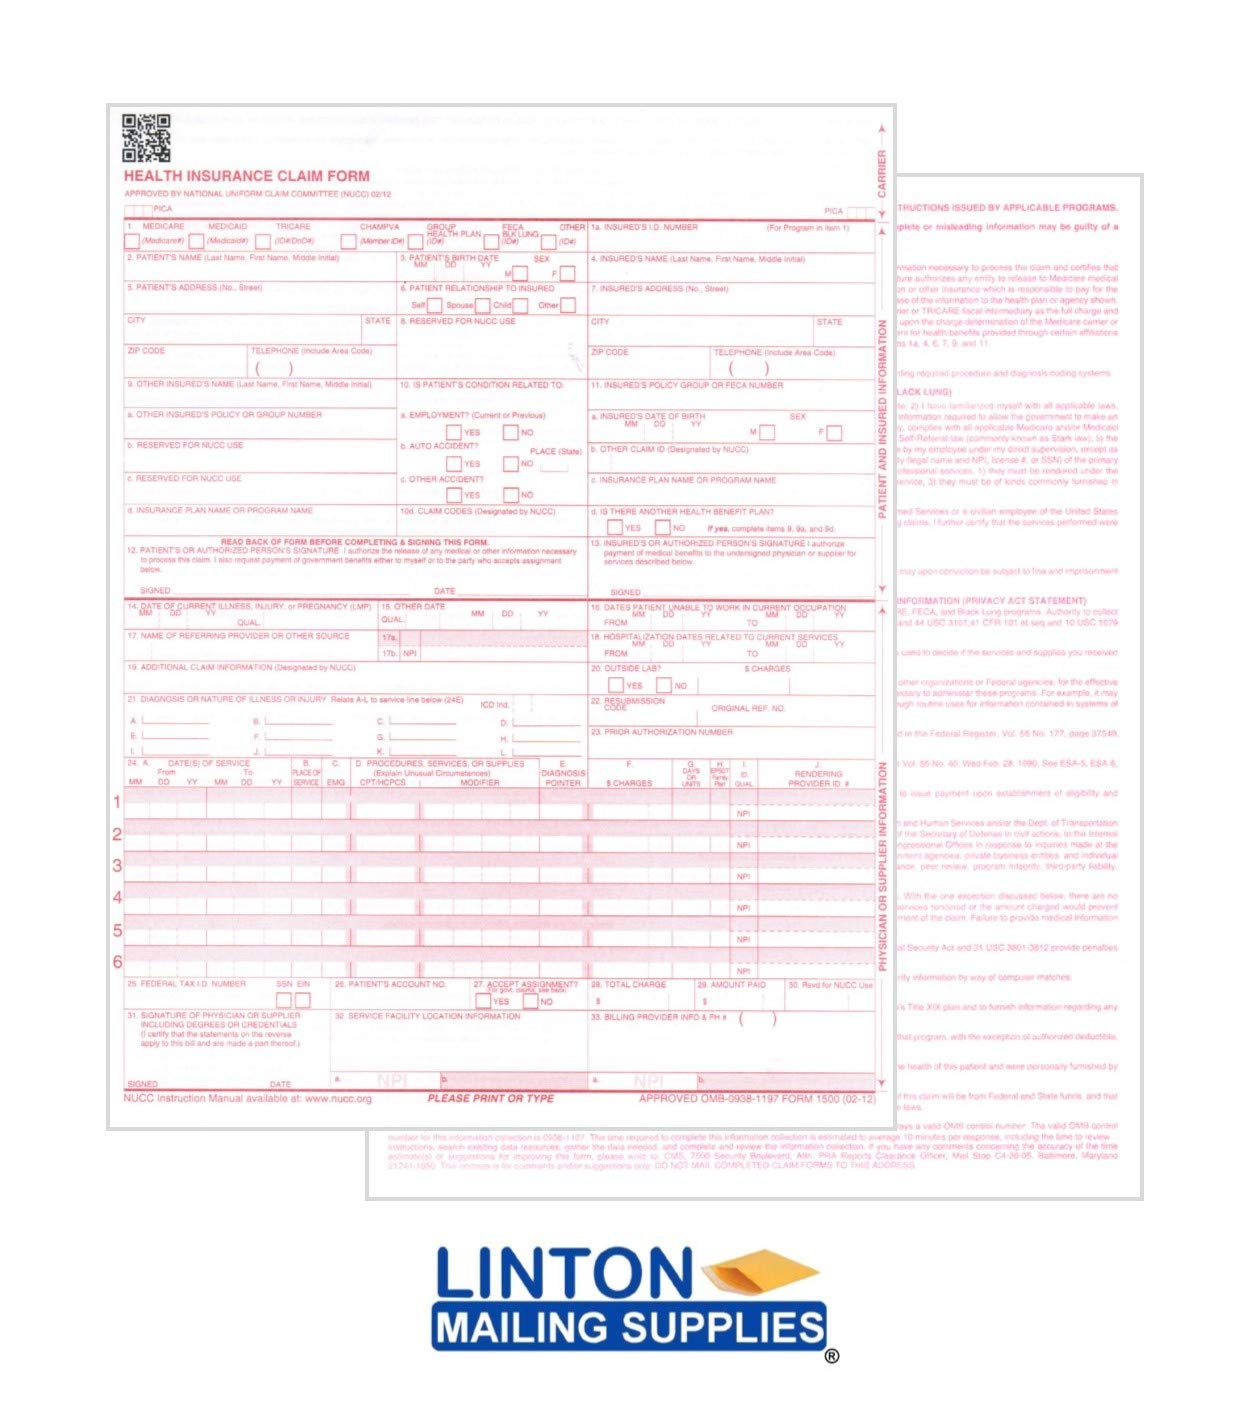 Health Insurance Claim Forms, New CMS-1500, HCFA (04/14 Medicare Approved 02/12 Version), 1-Part, 8.5'' x 11'' 24-lb Paper - 1 CASE of 2500 Sheets/Forms